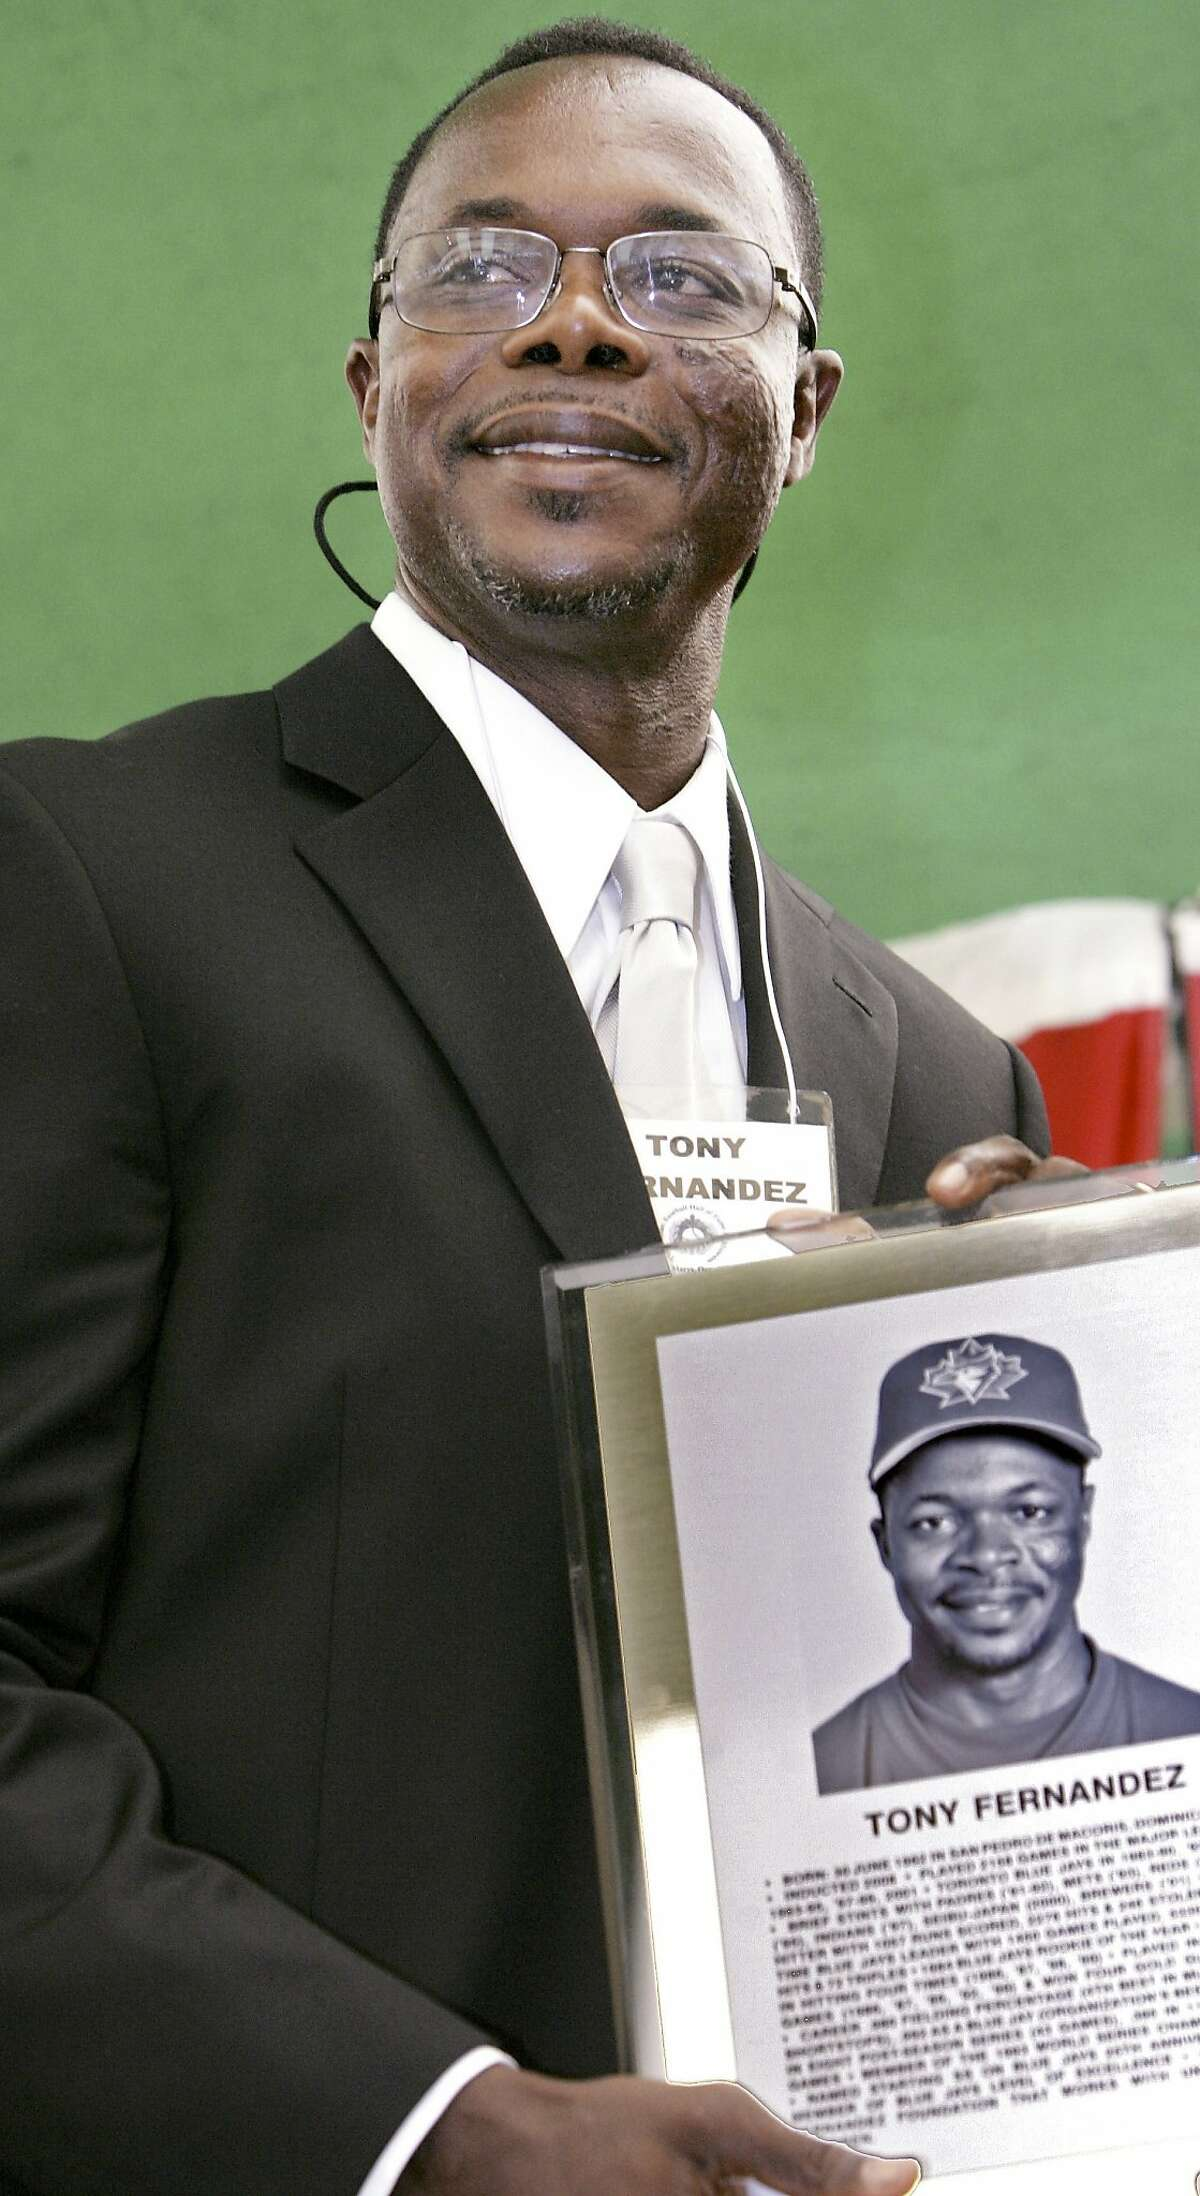 FILE - In this June 28, 2008, file photo, former Toronto Blue Jays player Tony Fernandez attends the Canadian Baseball Hall of Fame & Museum ceremony in St. Marys, Ontario. Former All-Star shortstop Fernandez remained on a life support system Sunday, Feb. 16, 2020, pending a decision by his family on how to proceed, the director of his foundation said. He had been in a medically induced coma, said Imrad Hallim, the director and co-founder of the Tony Fern�ndez Foundation. Fernandez was ill with a kidney disease for years and waiting for a transplant. (Ken Wightman, London Free Press/Canadian Press via AP, File)